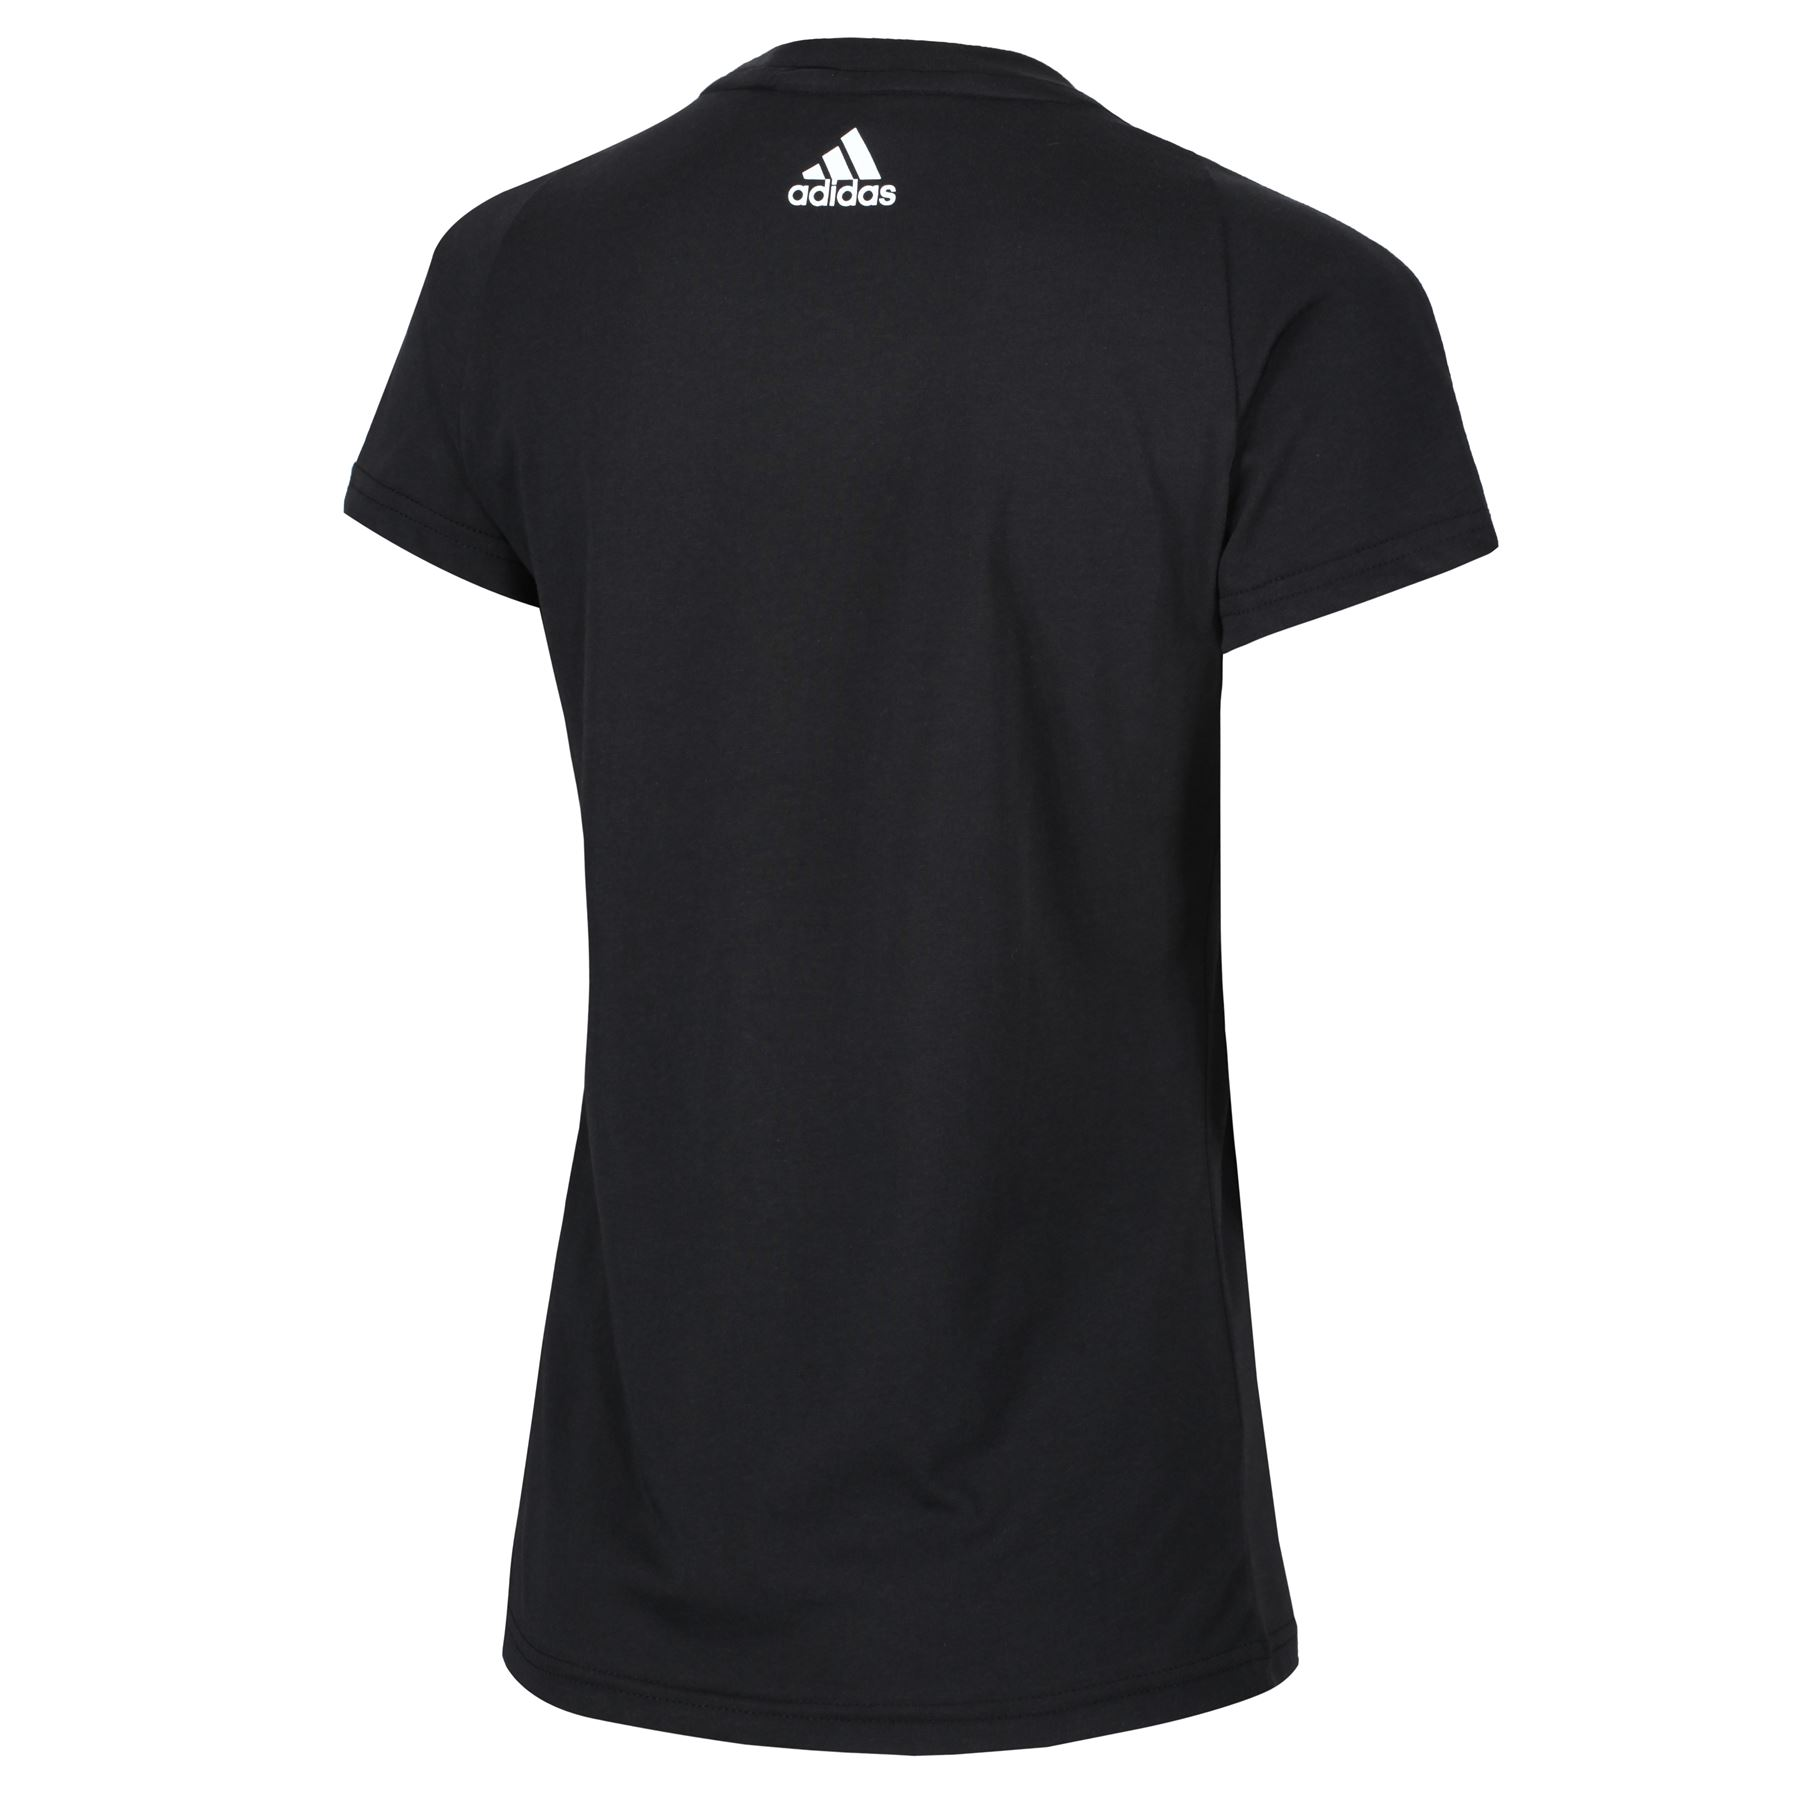 adidas-WOMEN-039-S-ESSENTIALS-LINEAR-T-SHIRT-GYM-BLACK-PINK-WHITE-NAVY-GIRLS-LADIES thumbnail 3